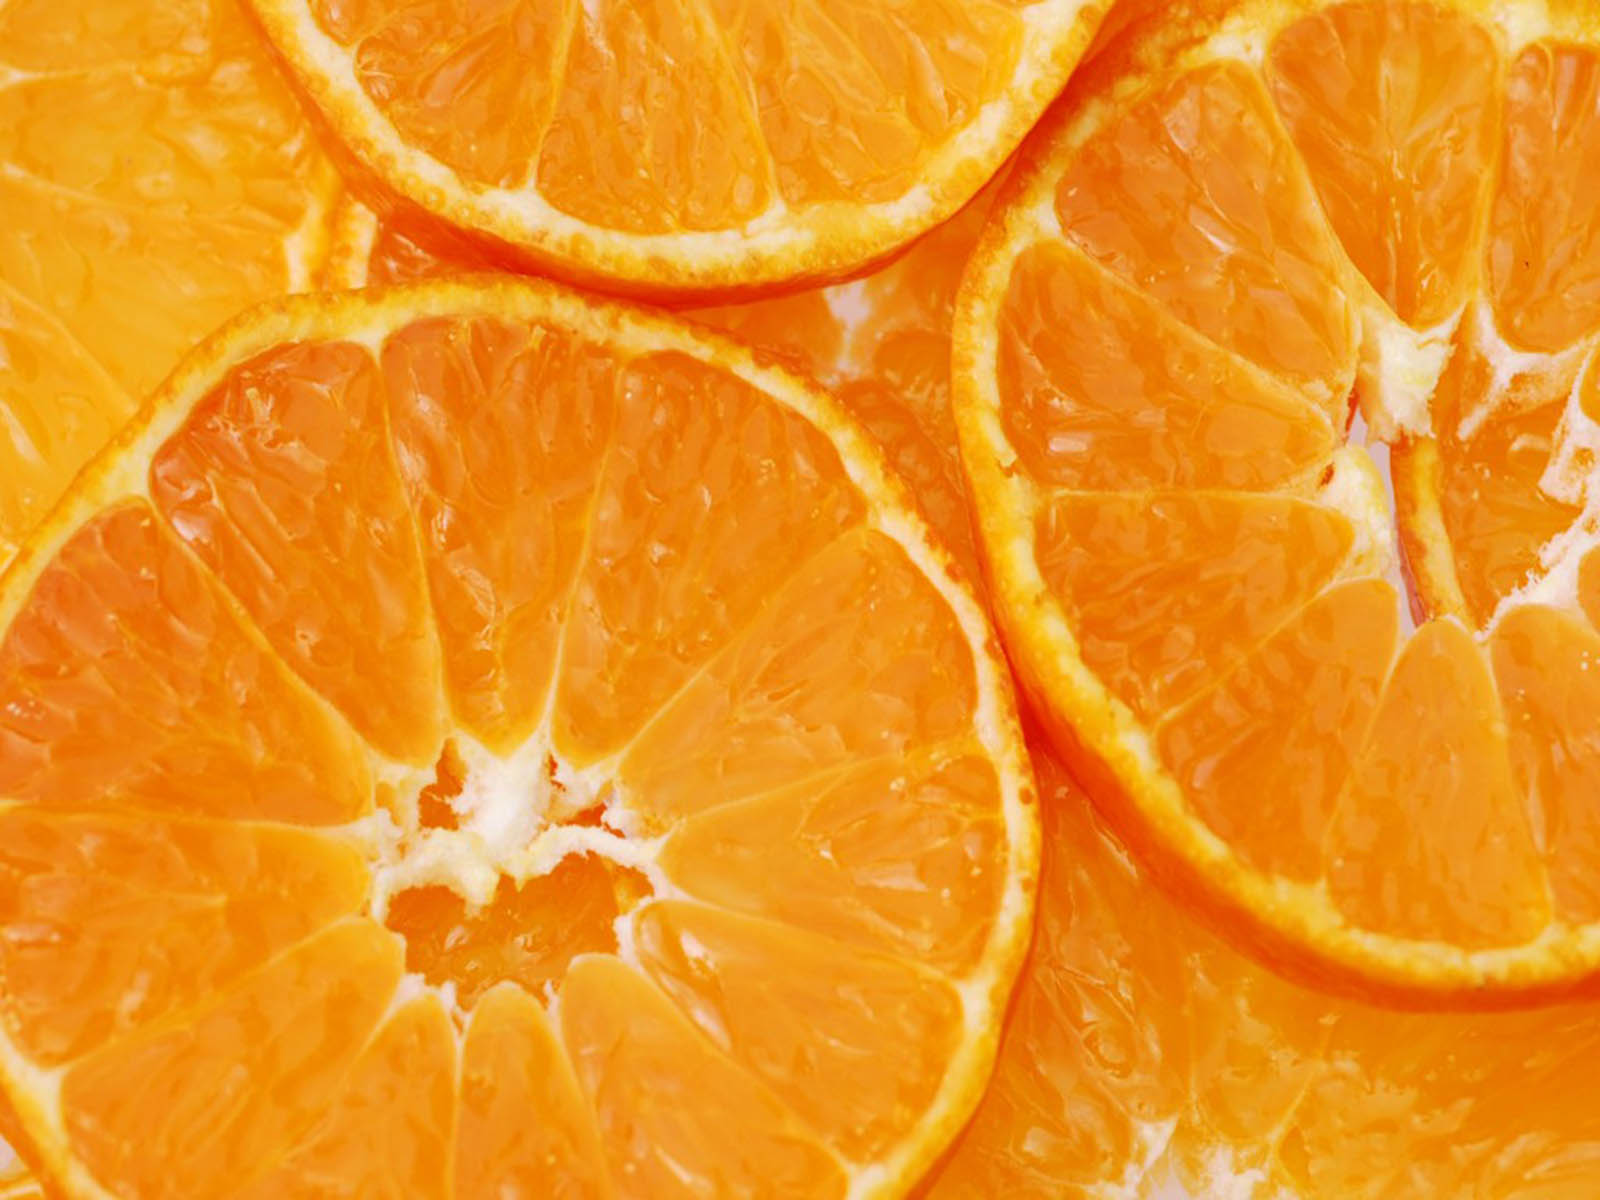 wallpapers Orange Fruits Wallpapers 1600x1200